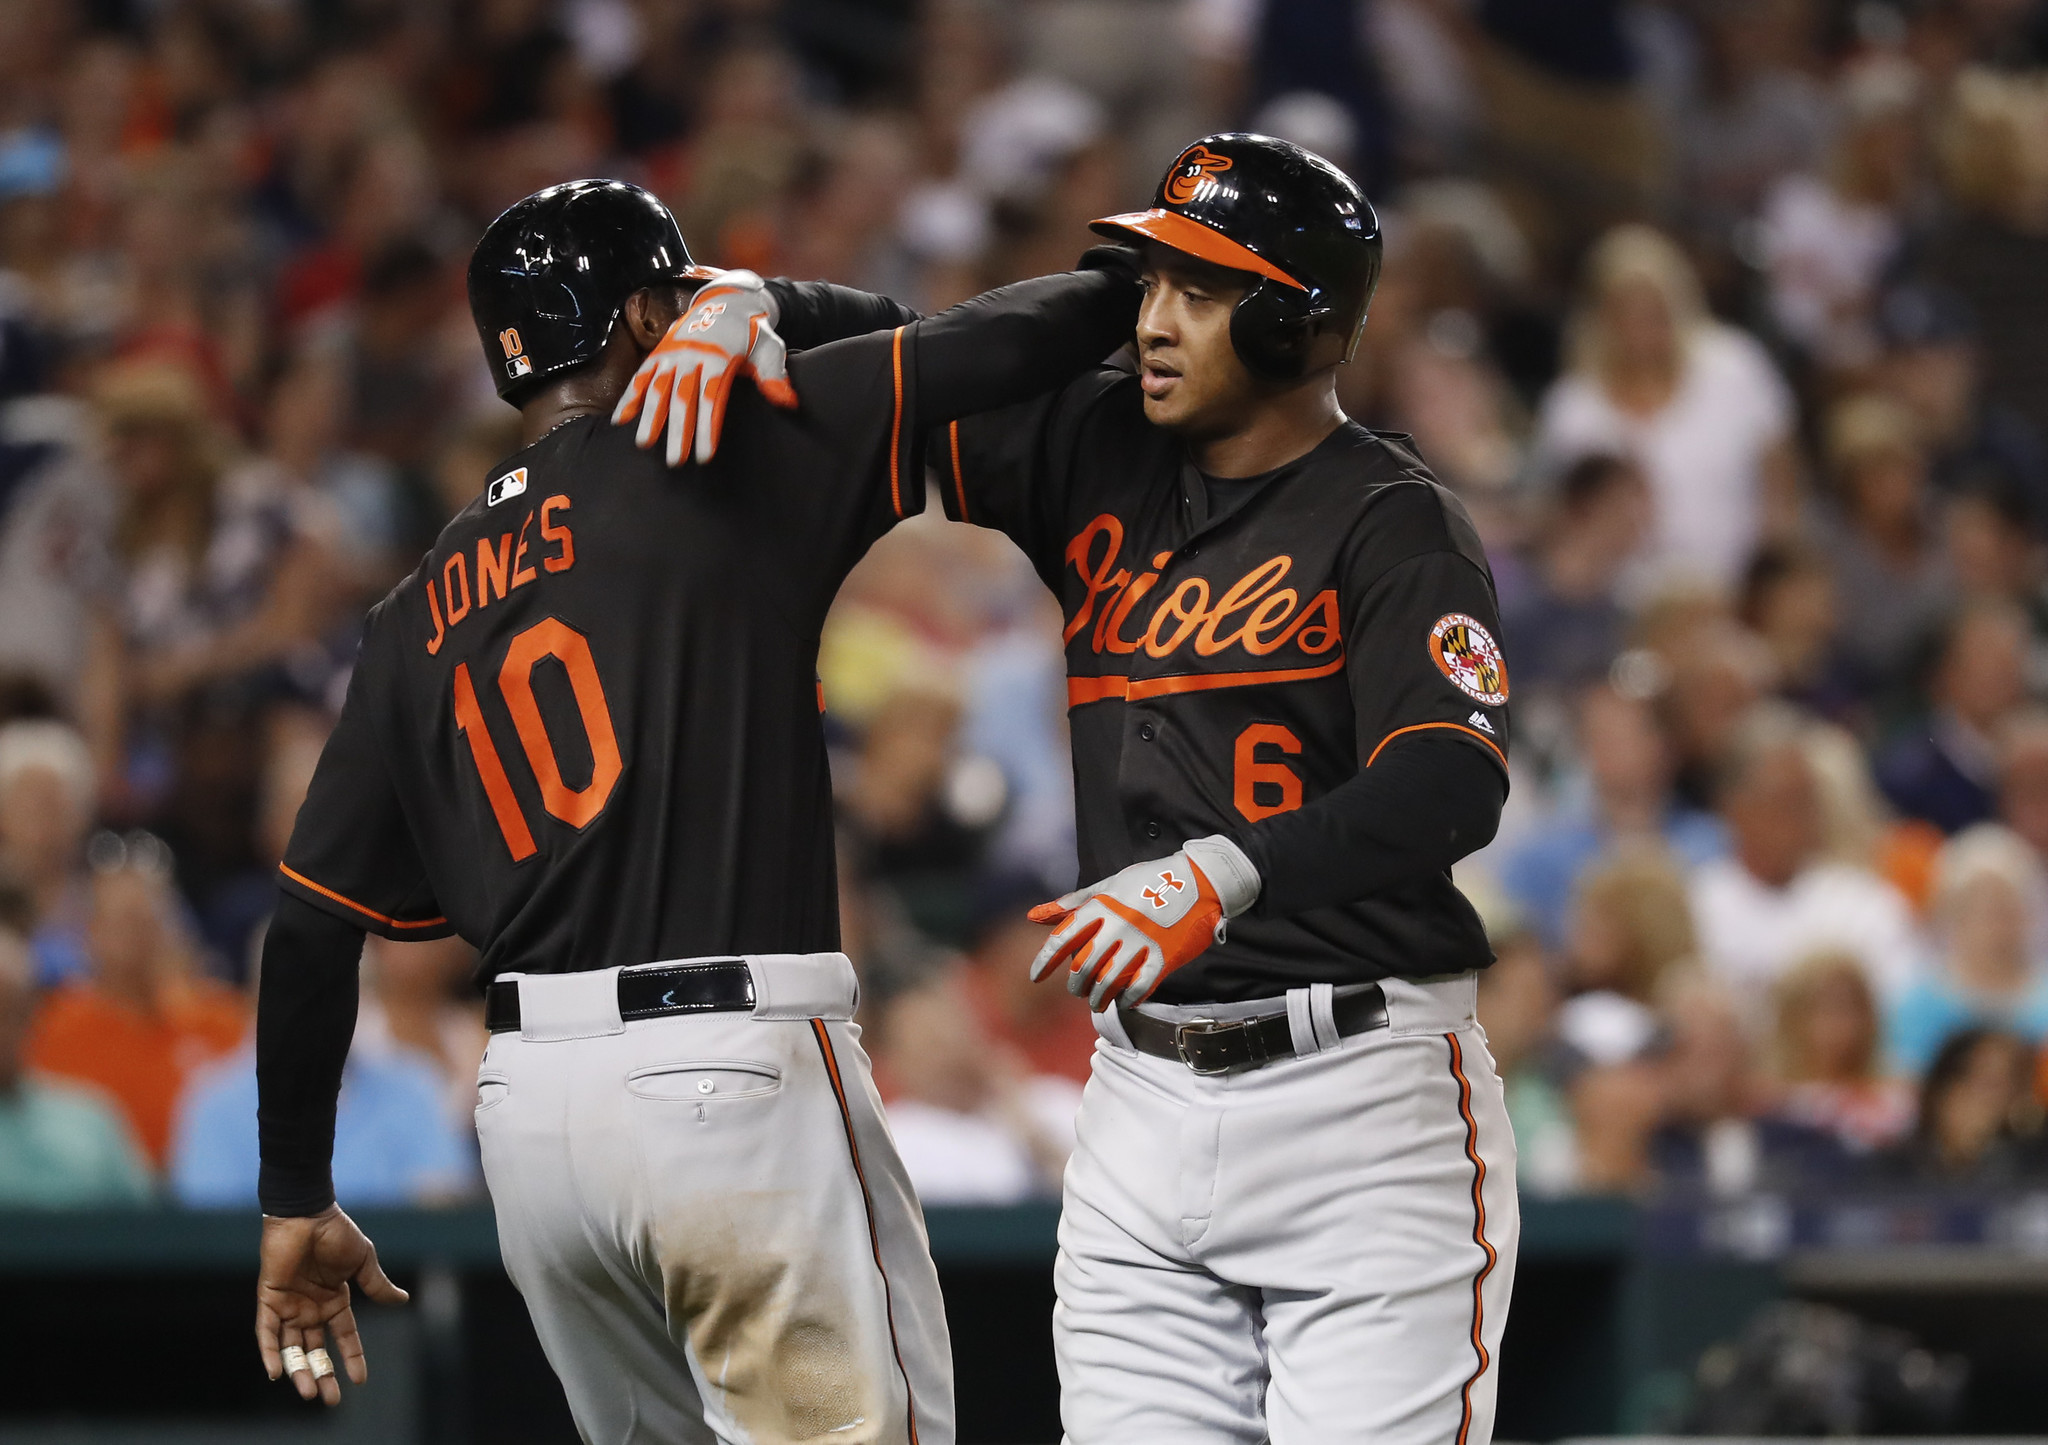 Bal-orioles-on-deck-what-to-watch-thursday-vs-rays-20160915